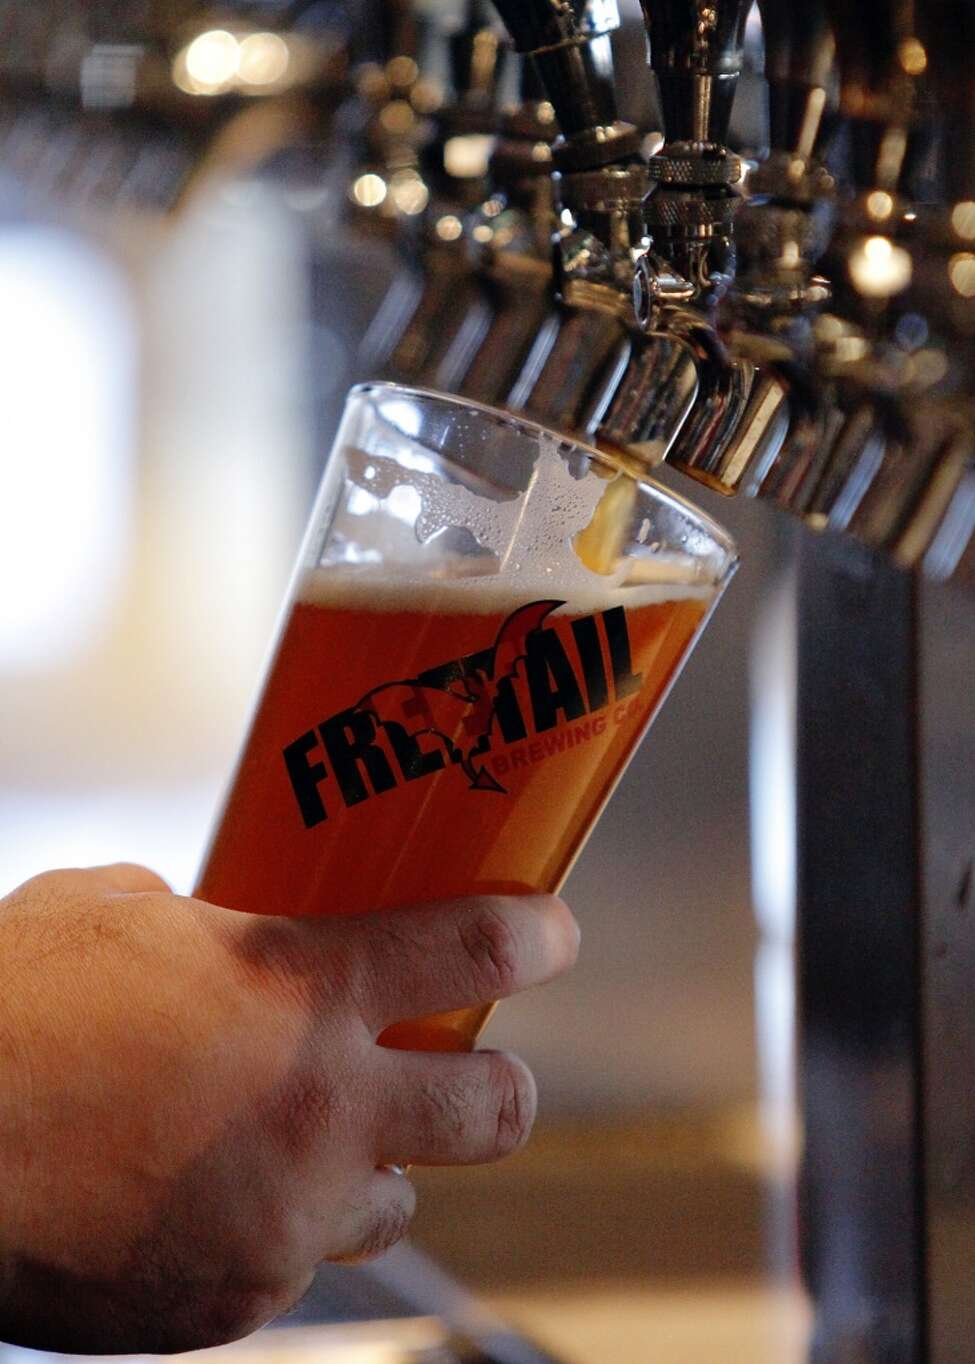 Beer being poured at the Freetail brew pub on the city's North Side.